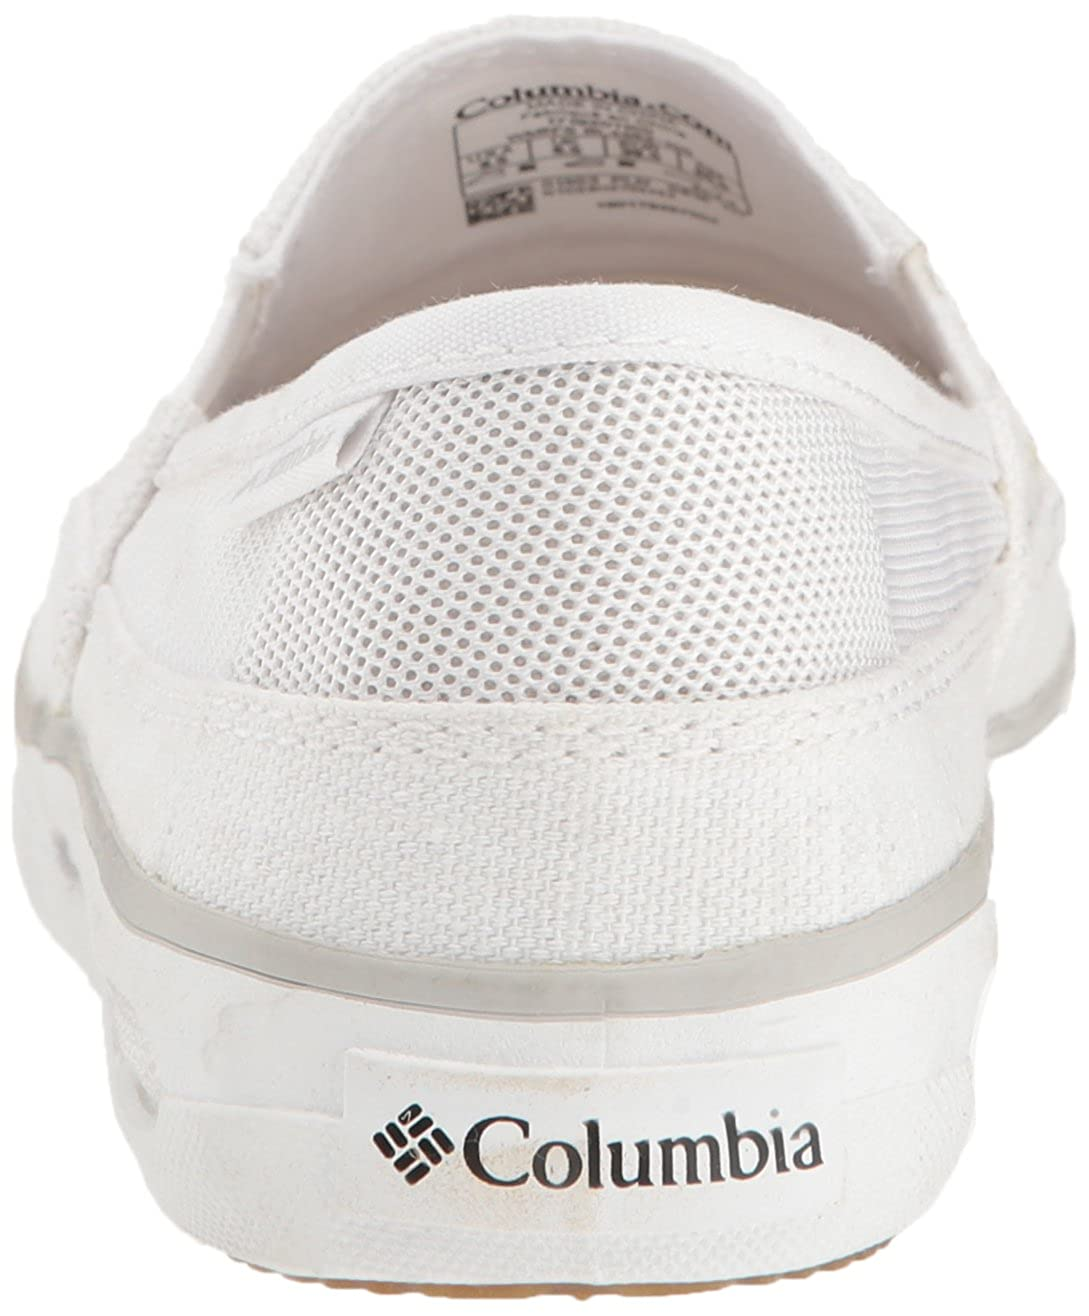 Columbia Damens's Vulc N N Vulc Vent Slip Outdoor Uniform Dress Schuhe Weiß, Cool Grau 2987f0